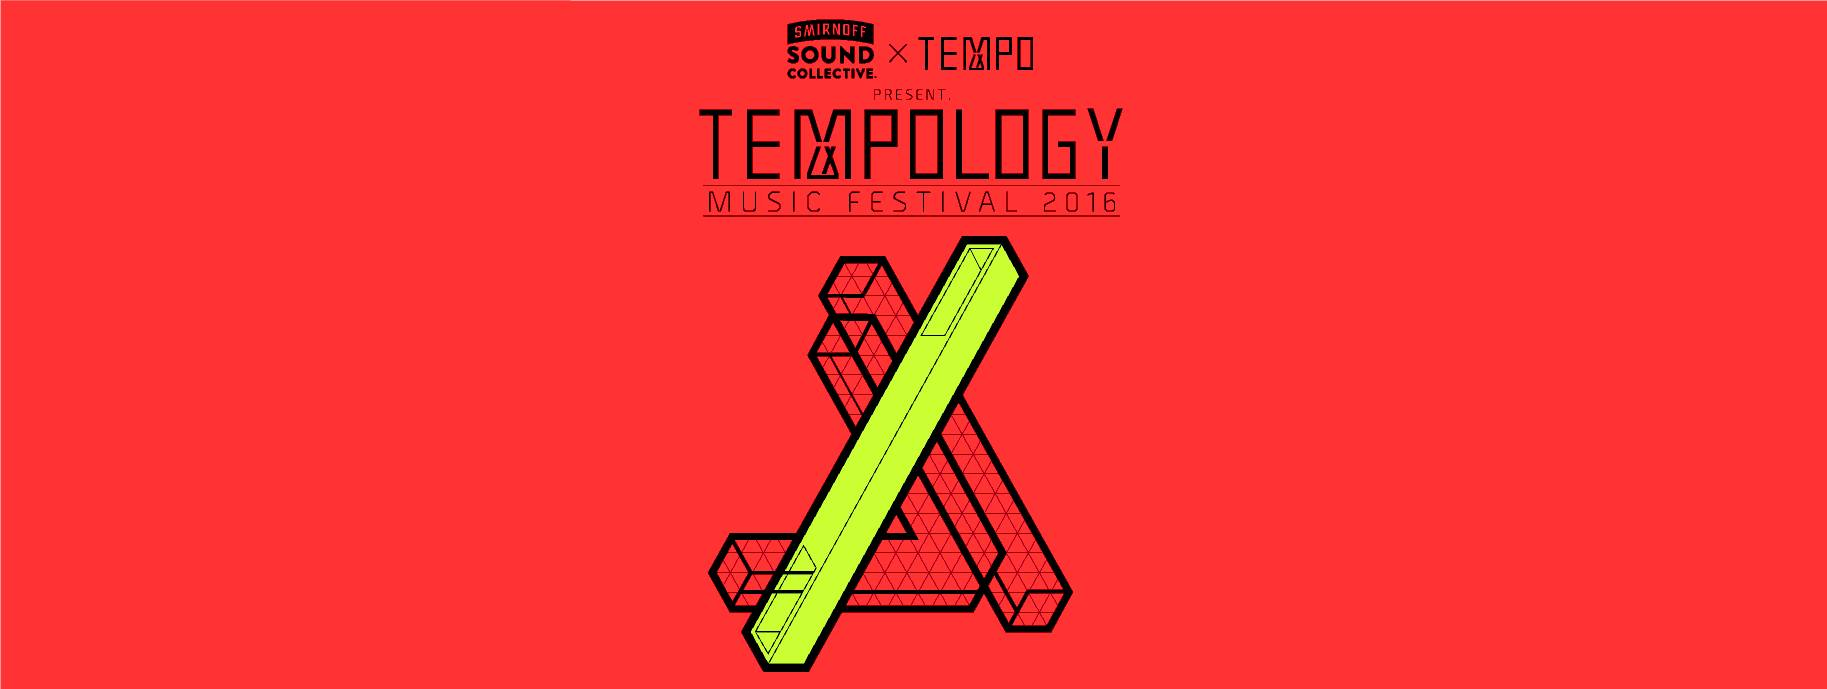 TEMPOLOGY 2016 Aw of